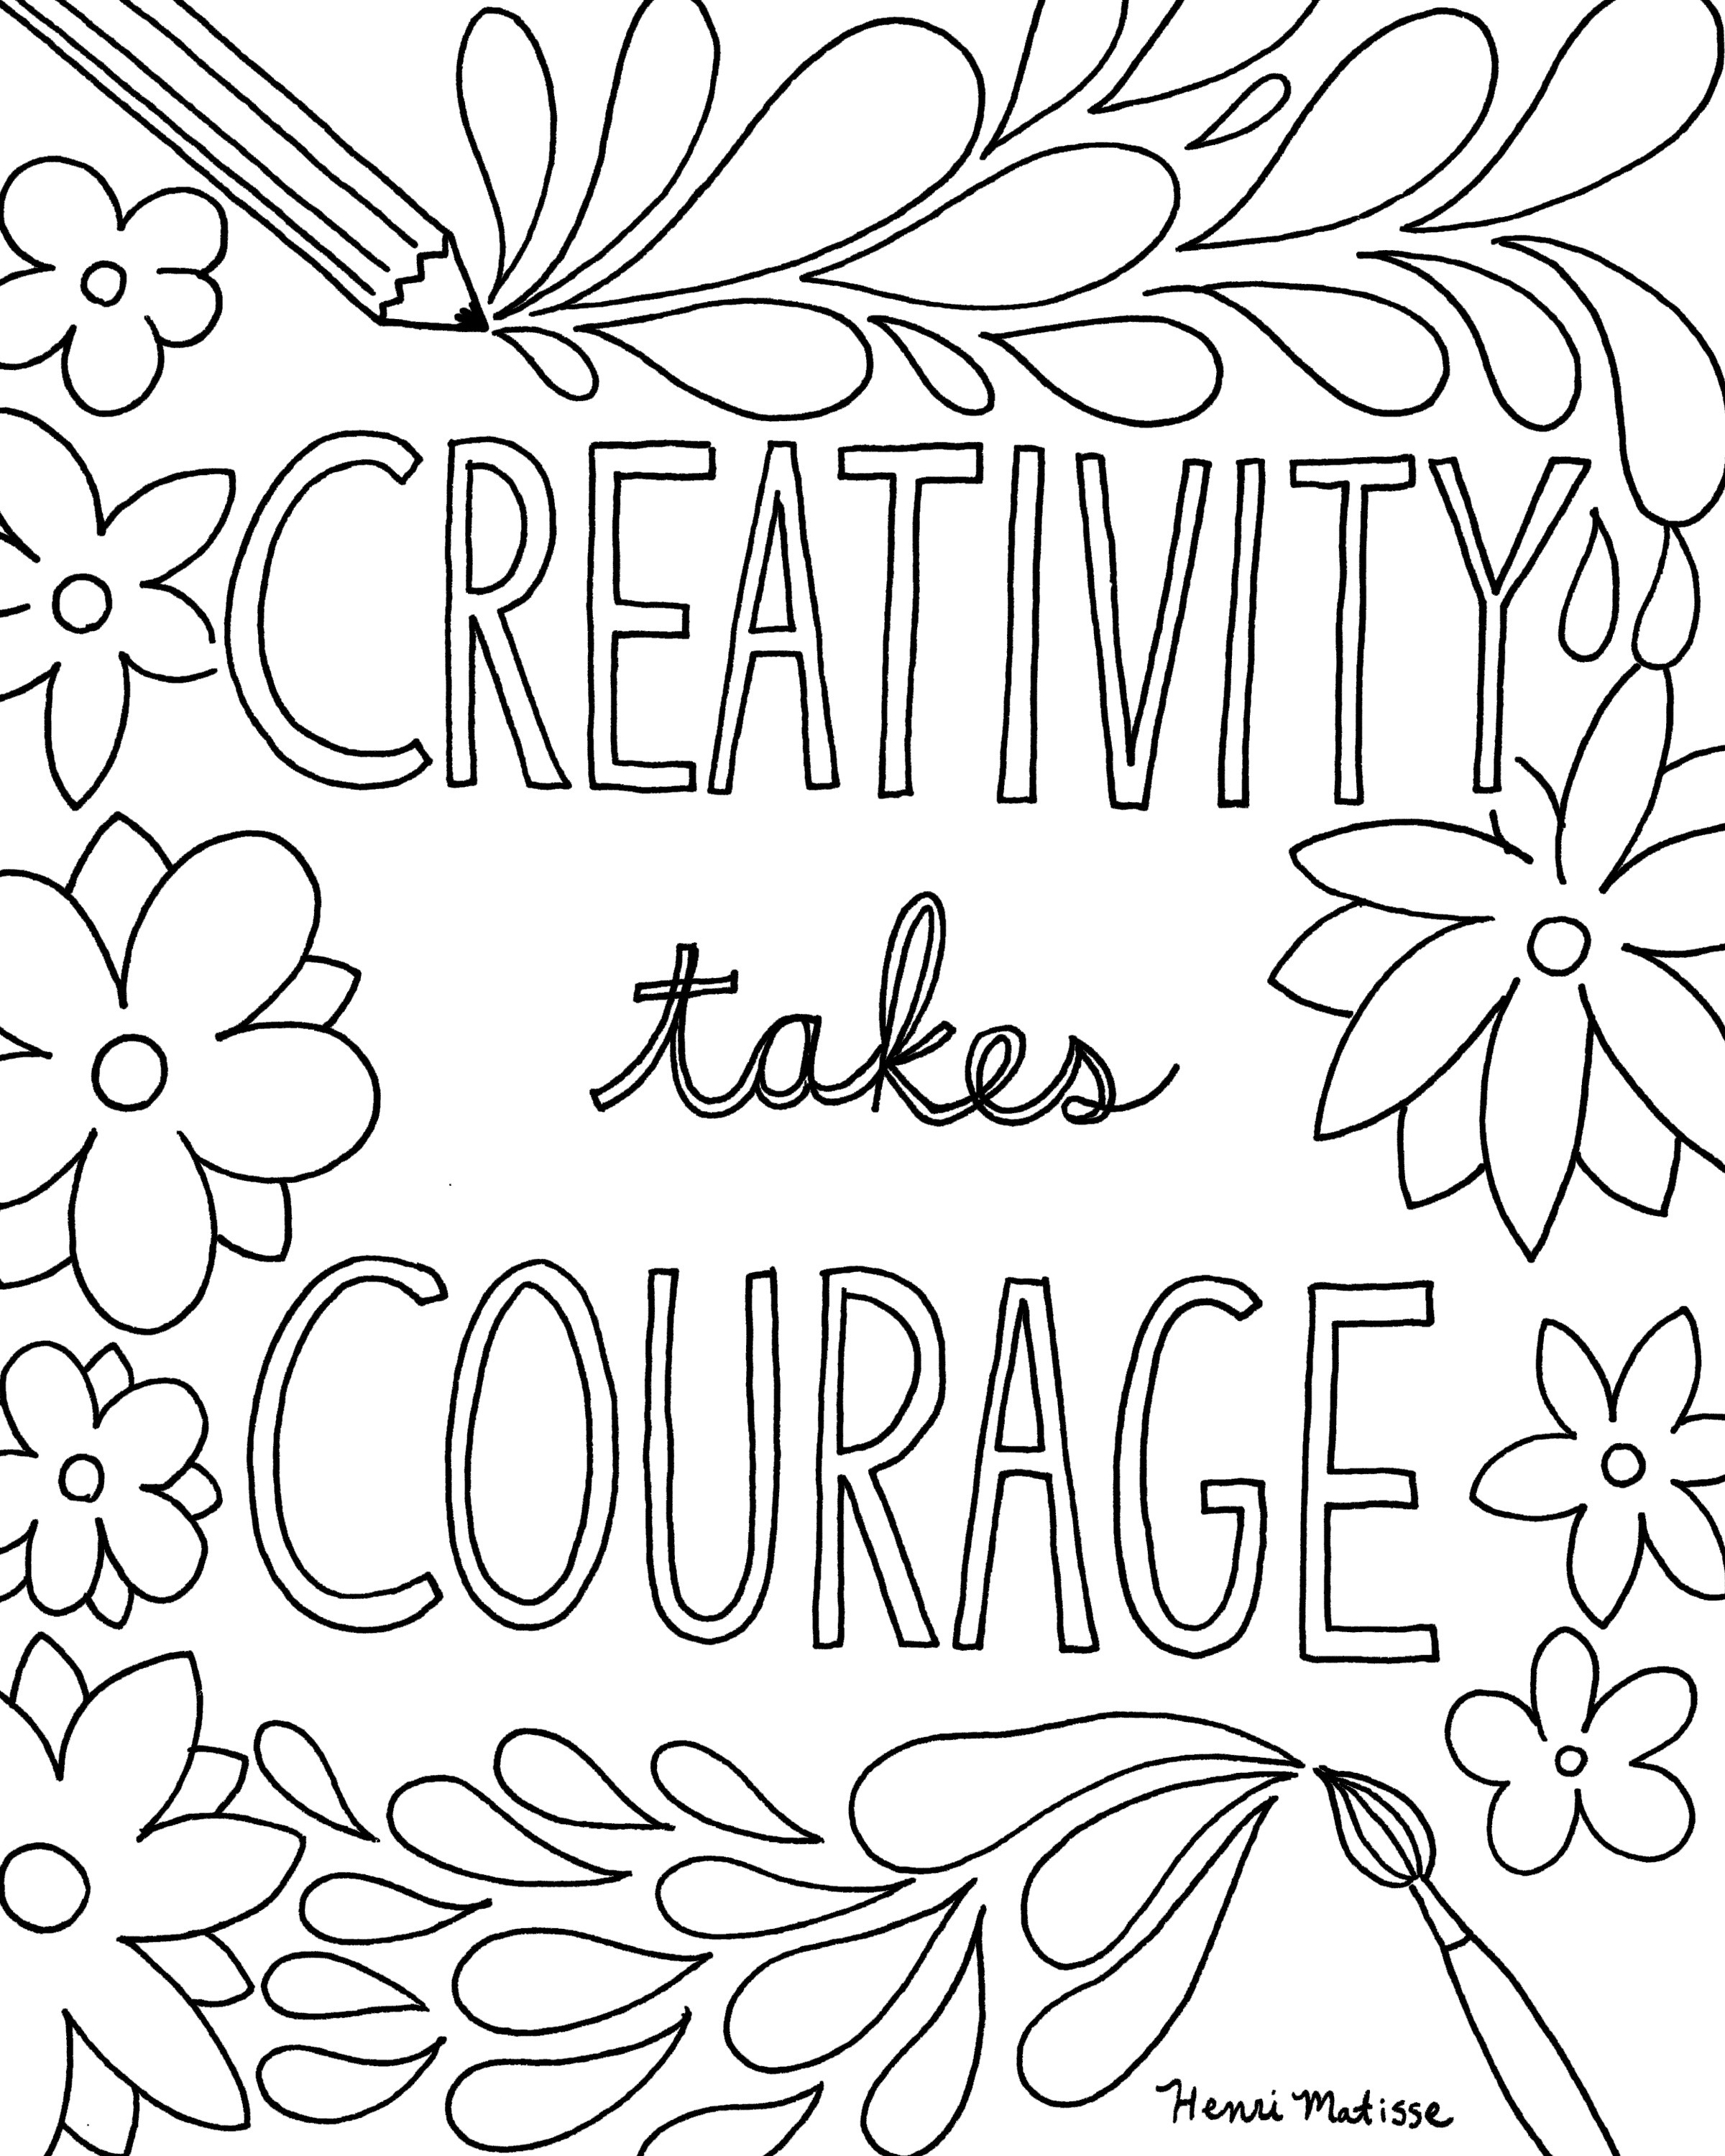 Quote Coloring Pages To Print  Free Printable Quote Coloring Pages for Grown Ups